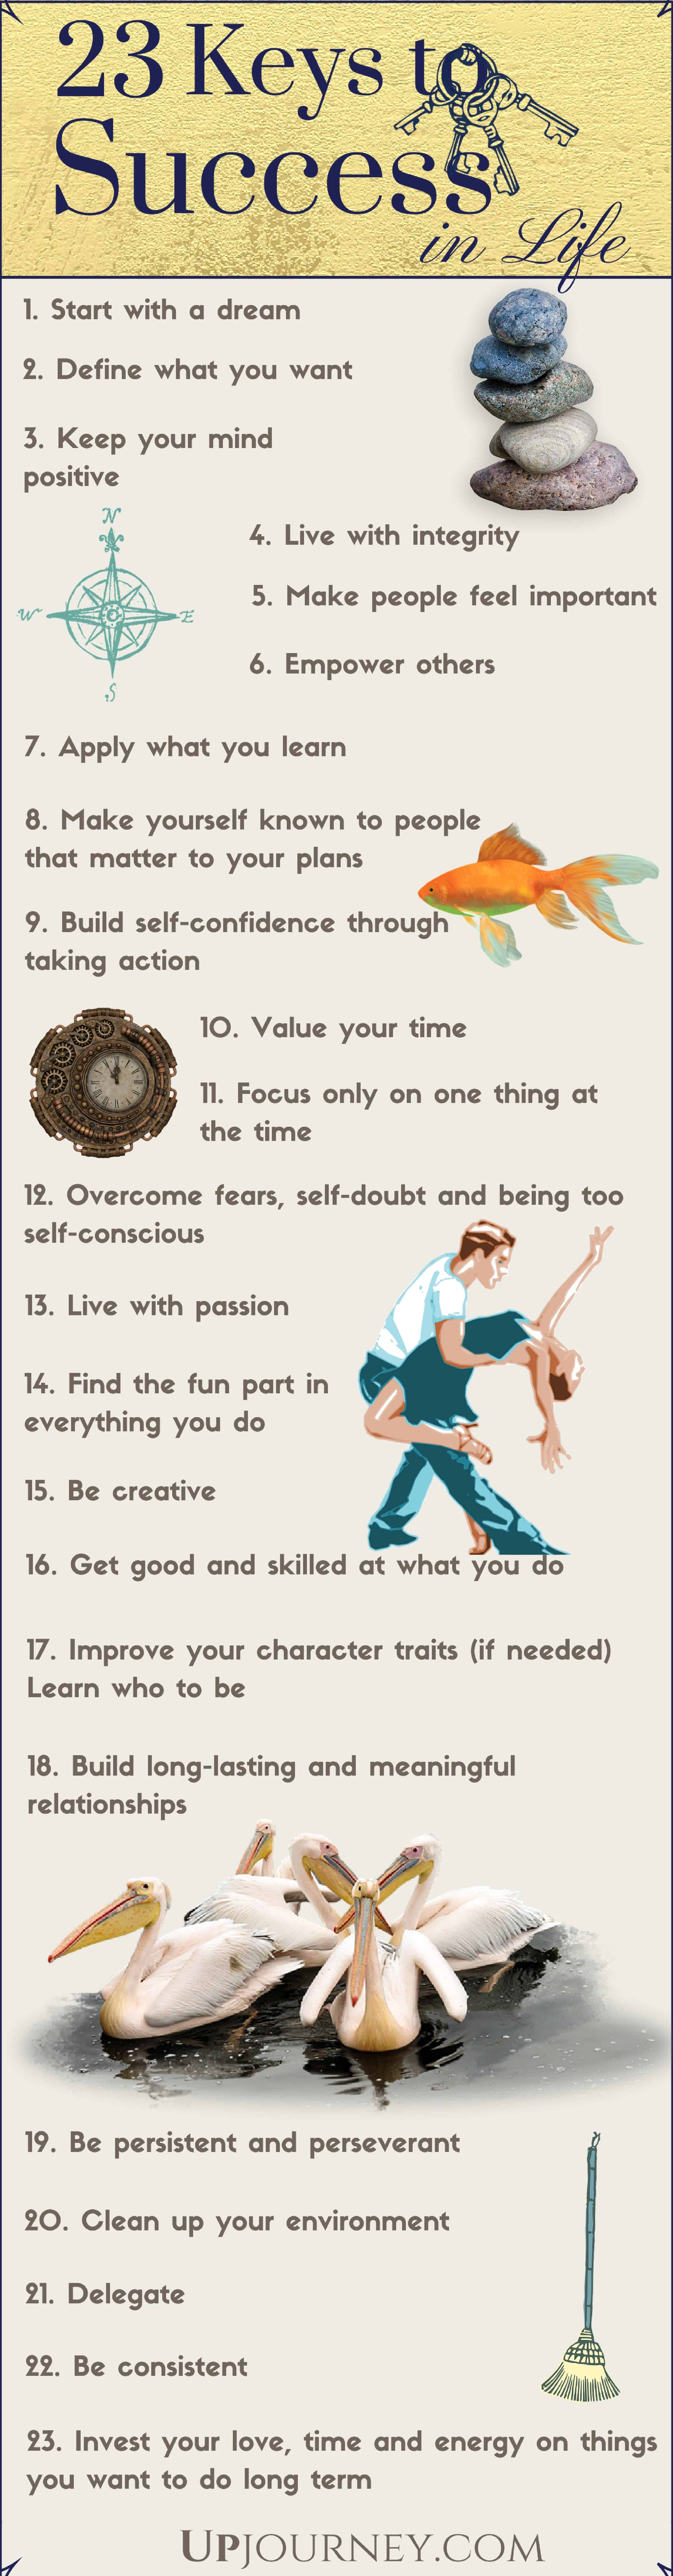 How to Be Successful - 23 Keys to Success in Life